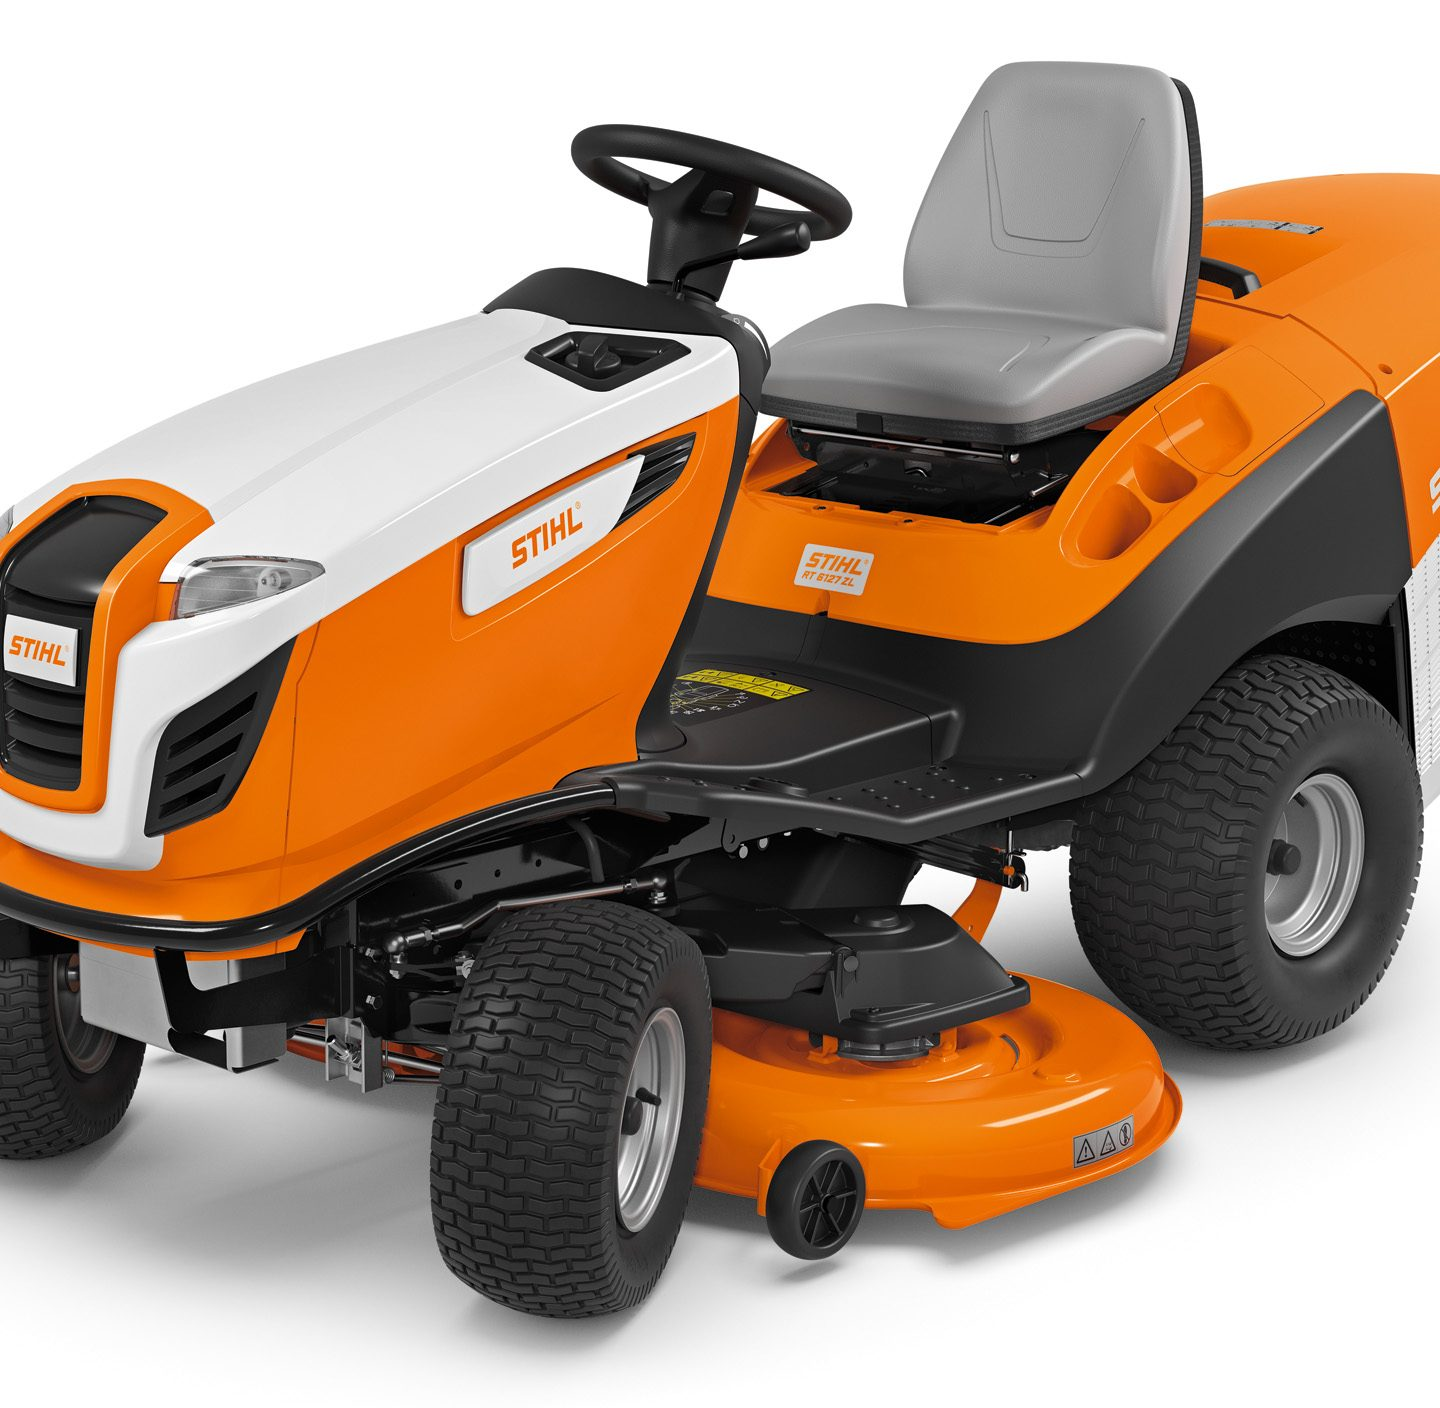 RT 6127 ZL - POWERFUL LAWN TRACTOR WITH EXCELLENT MOWING PERFORMANCE AND WIDE DECK